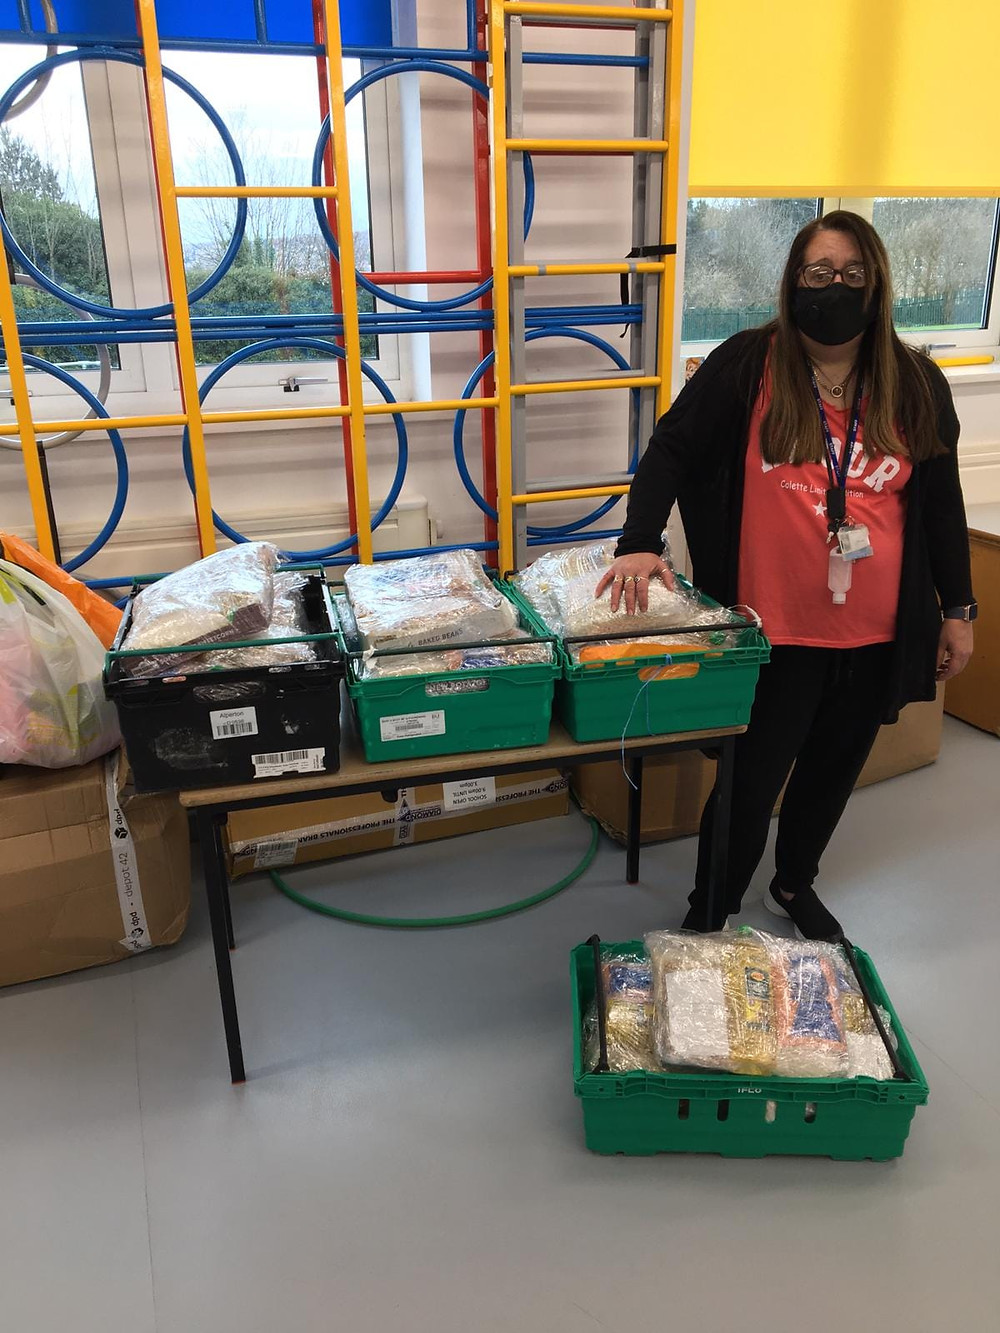 Yorkshire foodbank donation for purpose of life charity